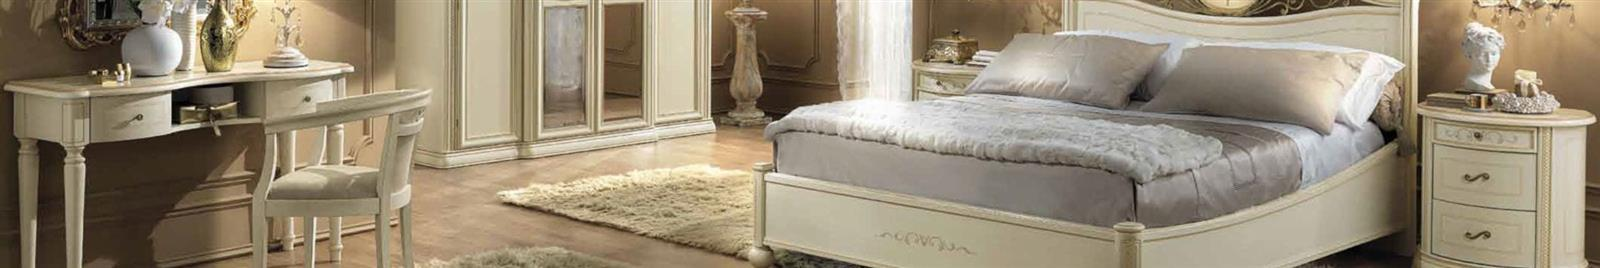 Siena Night Ivory Range - Italian Bedroom Furniture